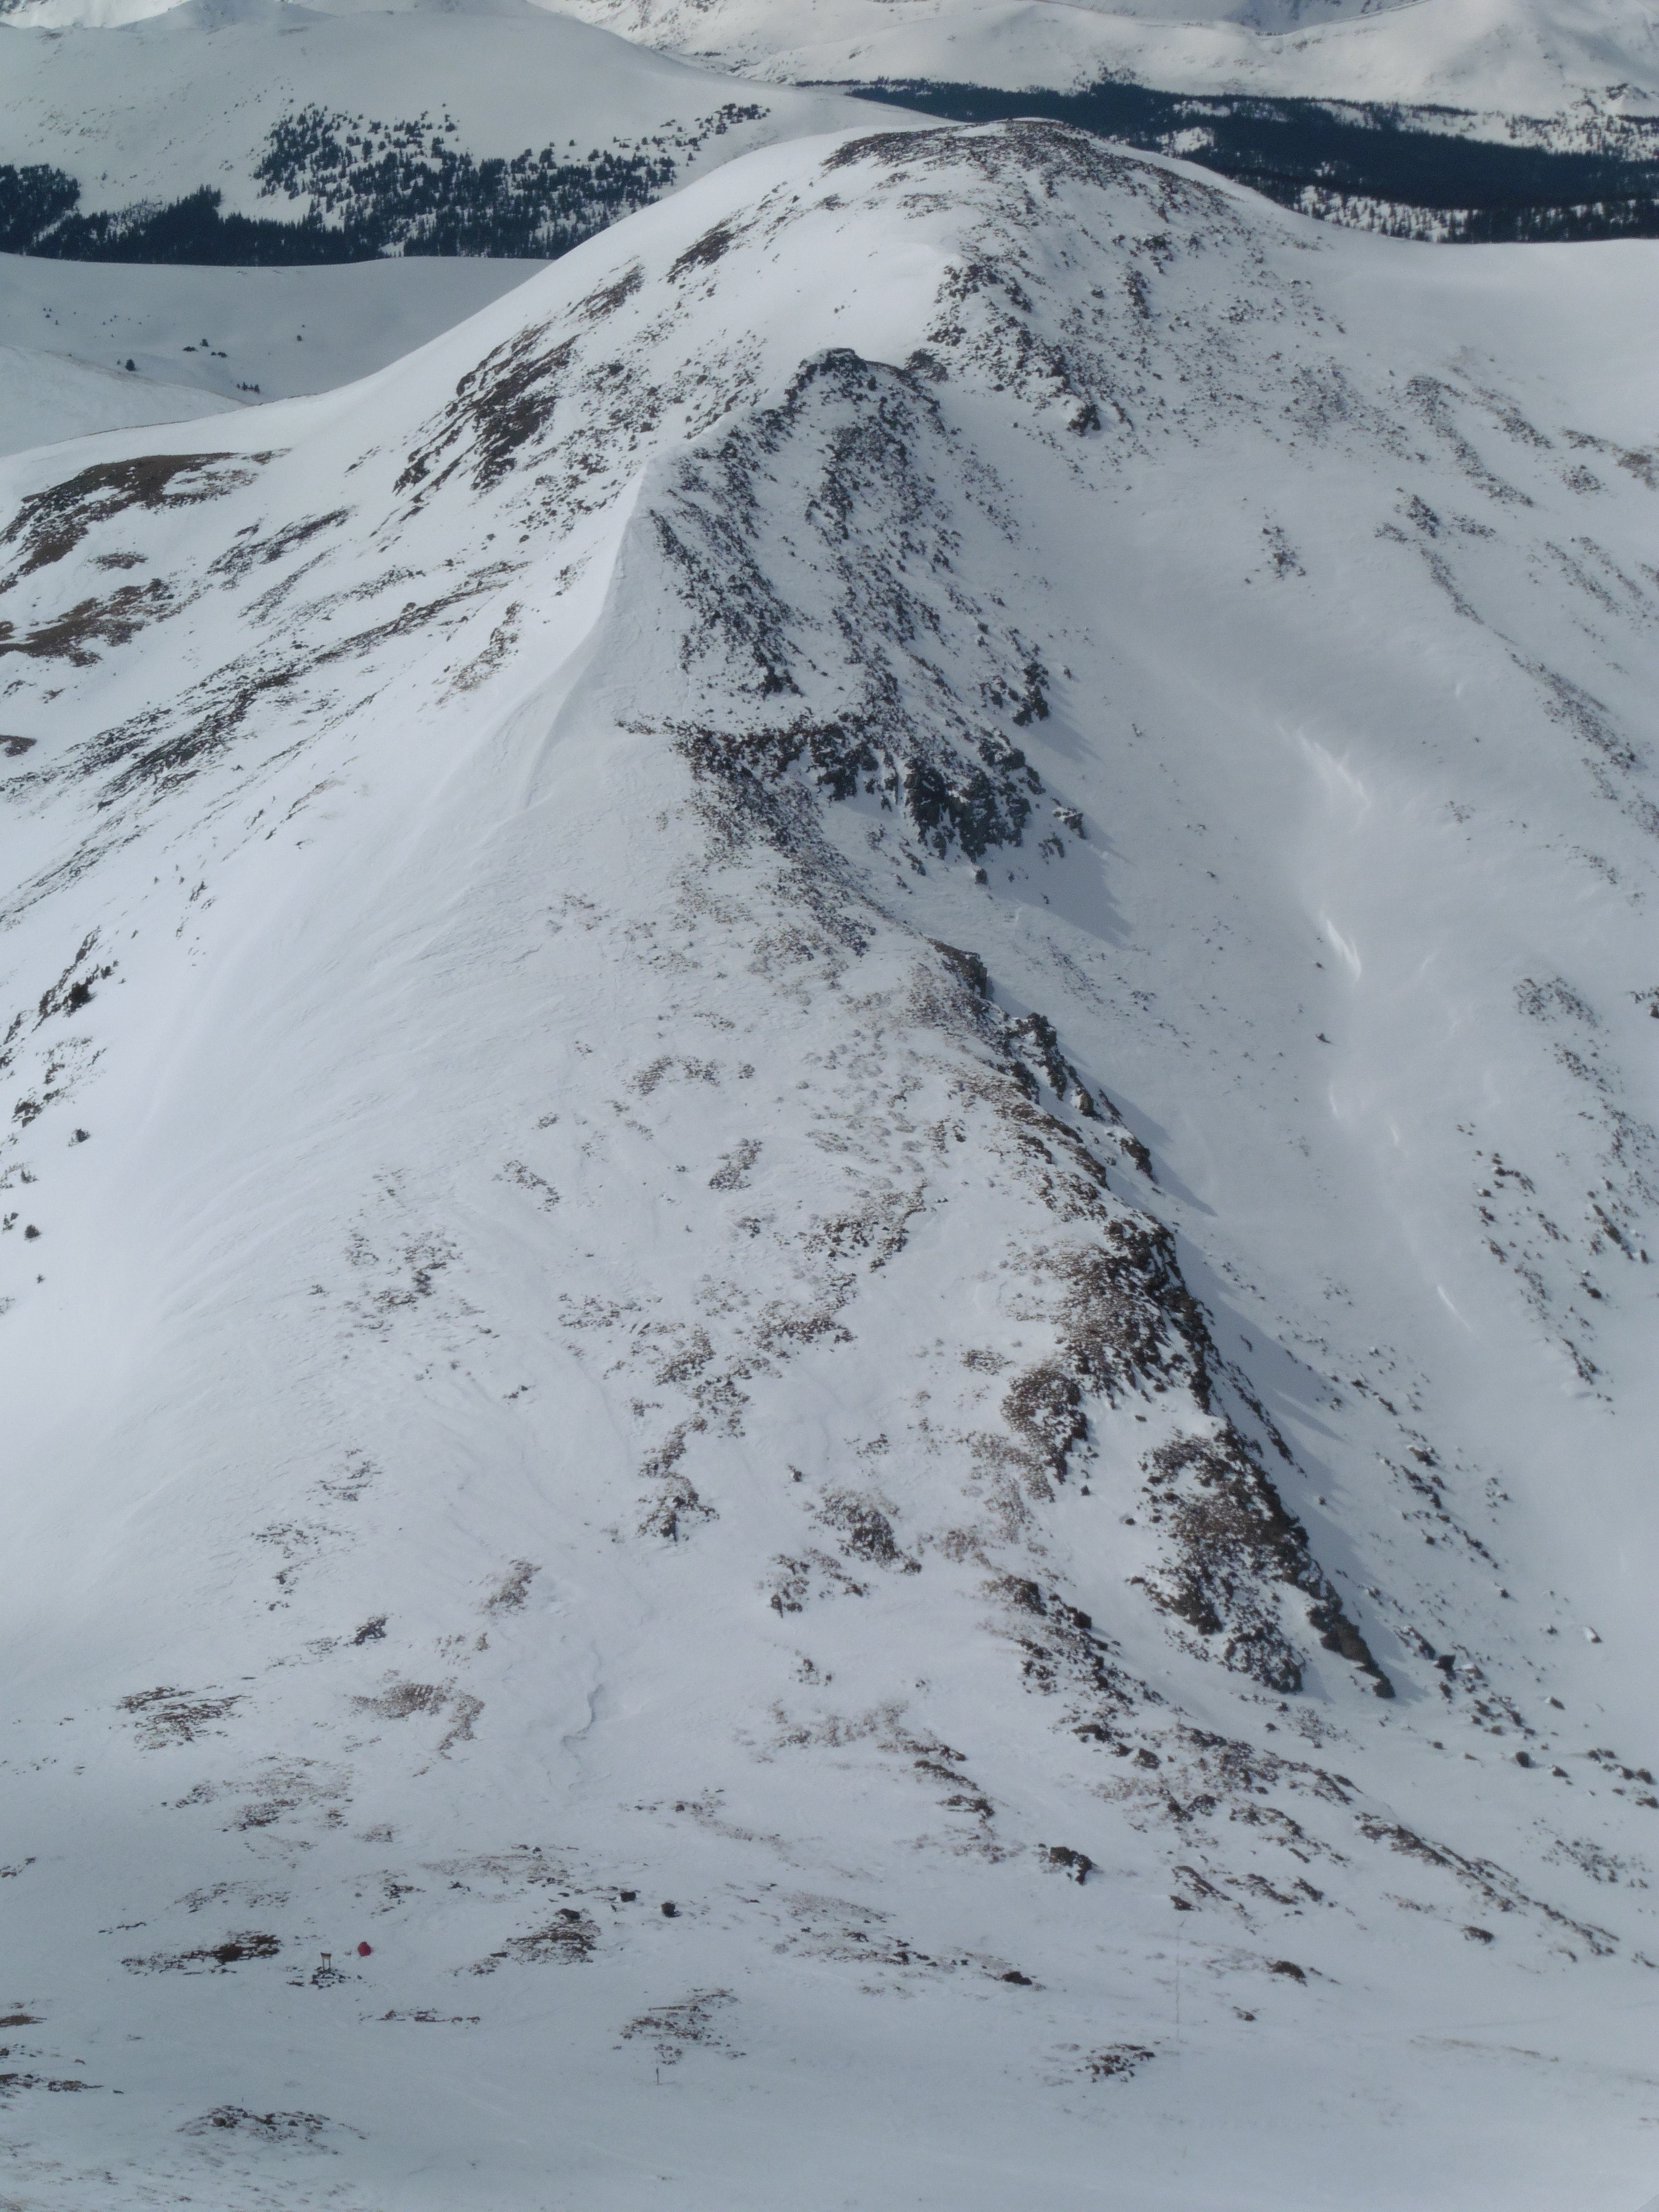 12,780 from Tincup on Sunday. The knife edge can be seen along the summit ridge. Note the red tent in the bottom left.